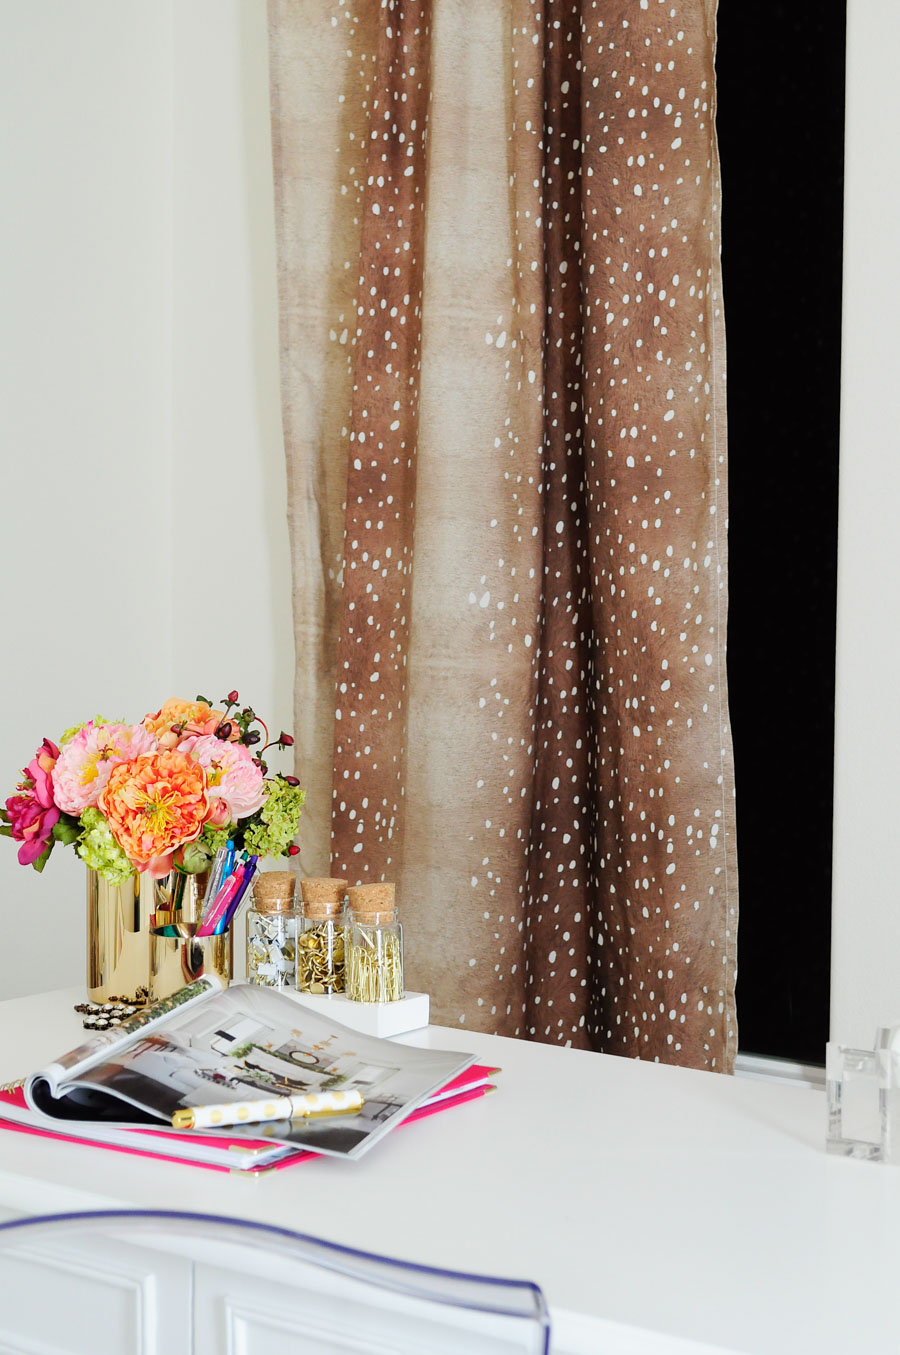 Minted's Trompe L'Oeil Fawn curtains look fabulous in this chic white and gold feminine home office.